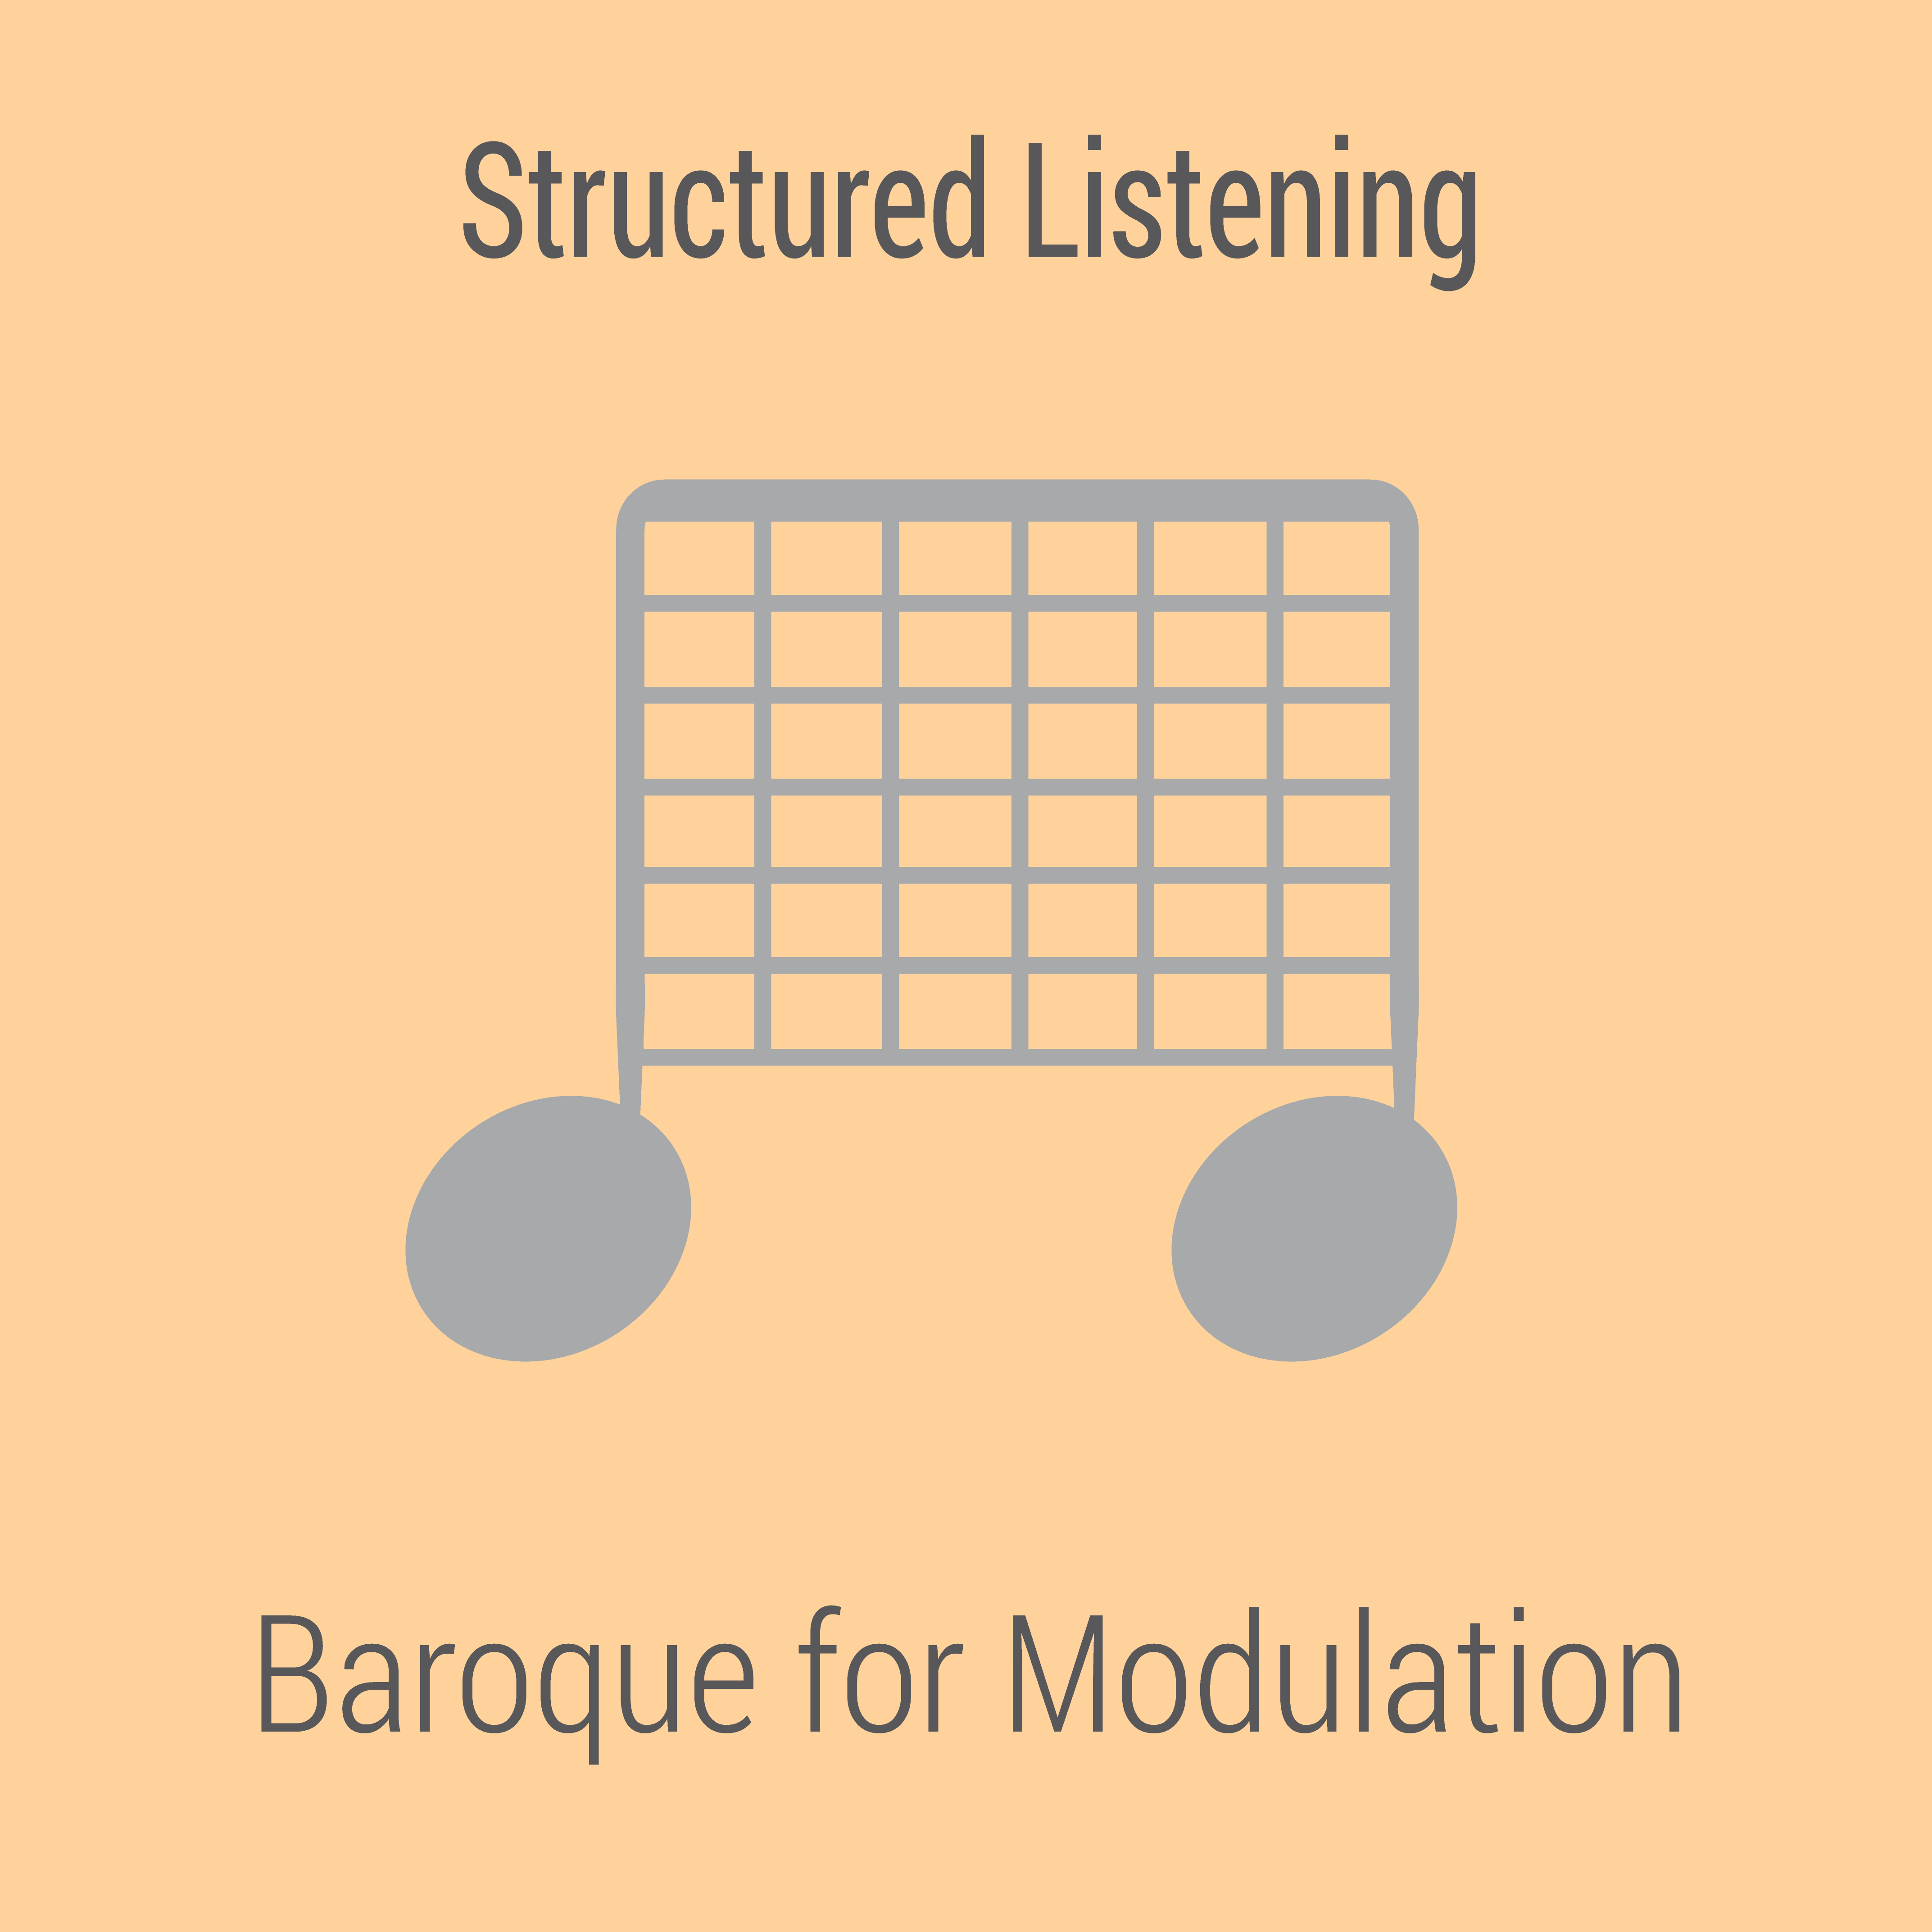 Baroque for Modulation (Not Modulated)